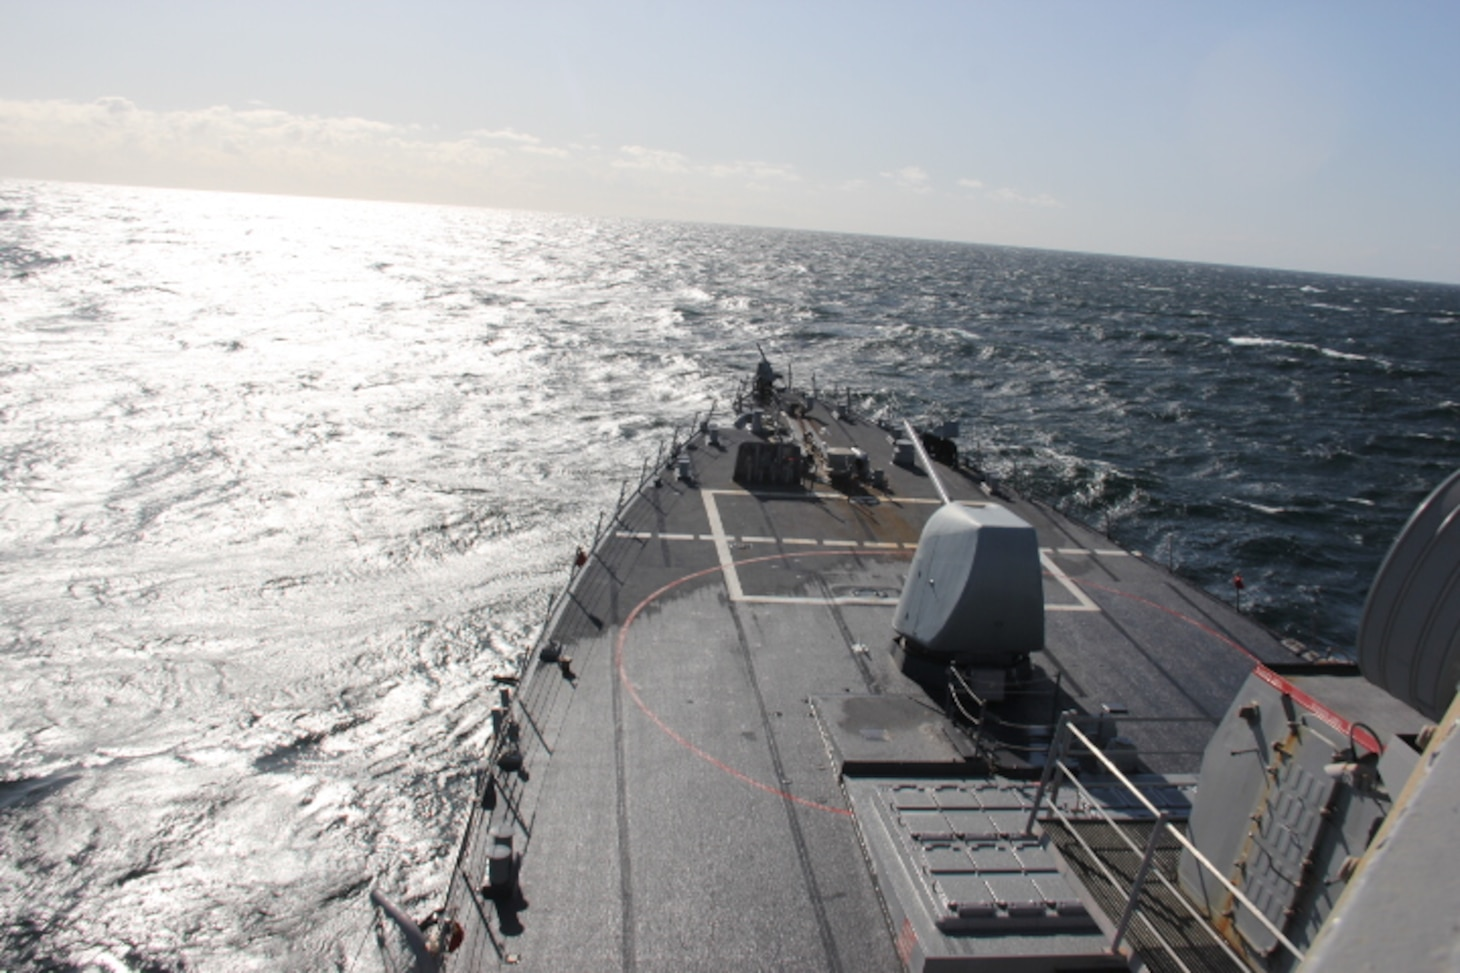 USS Donald Cook in the Baltic Sea